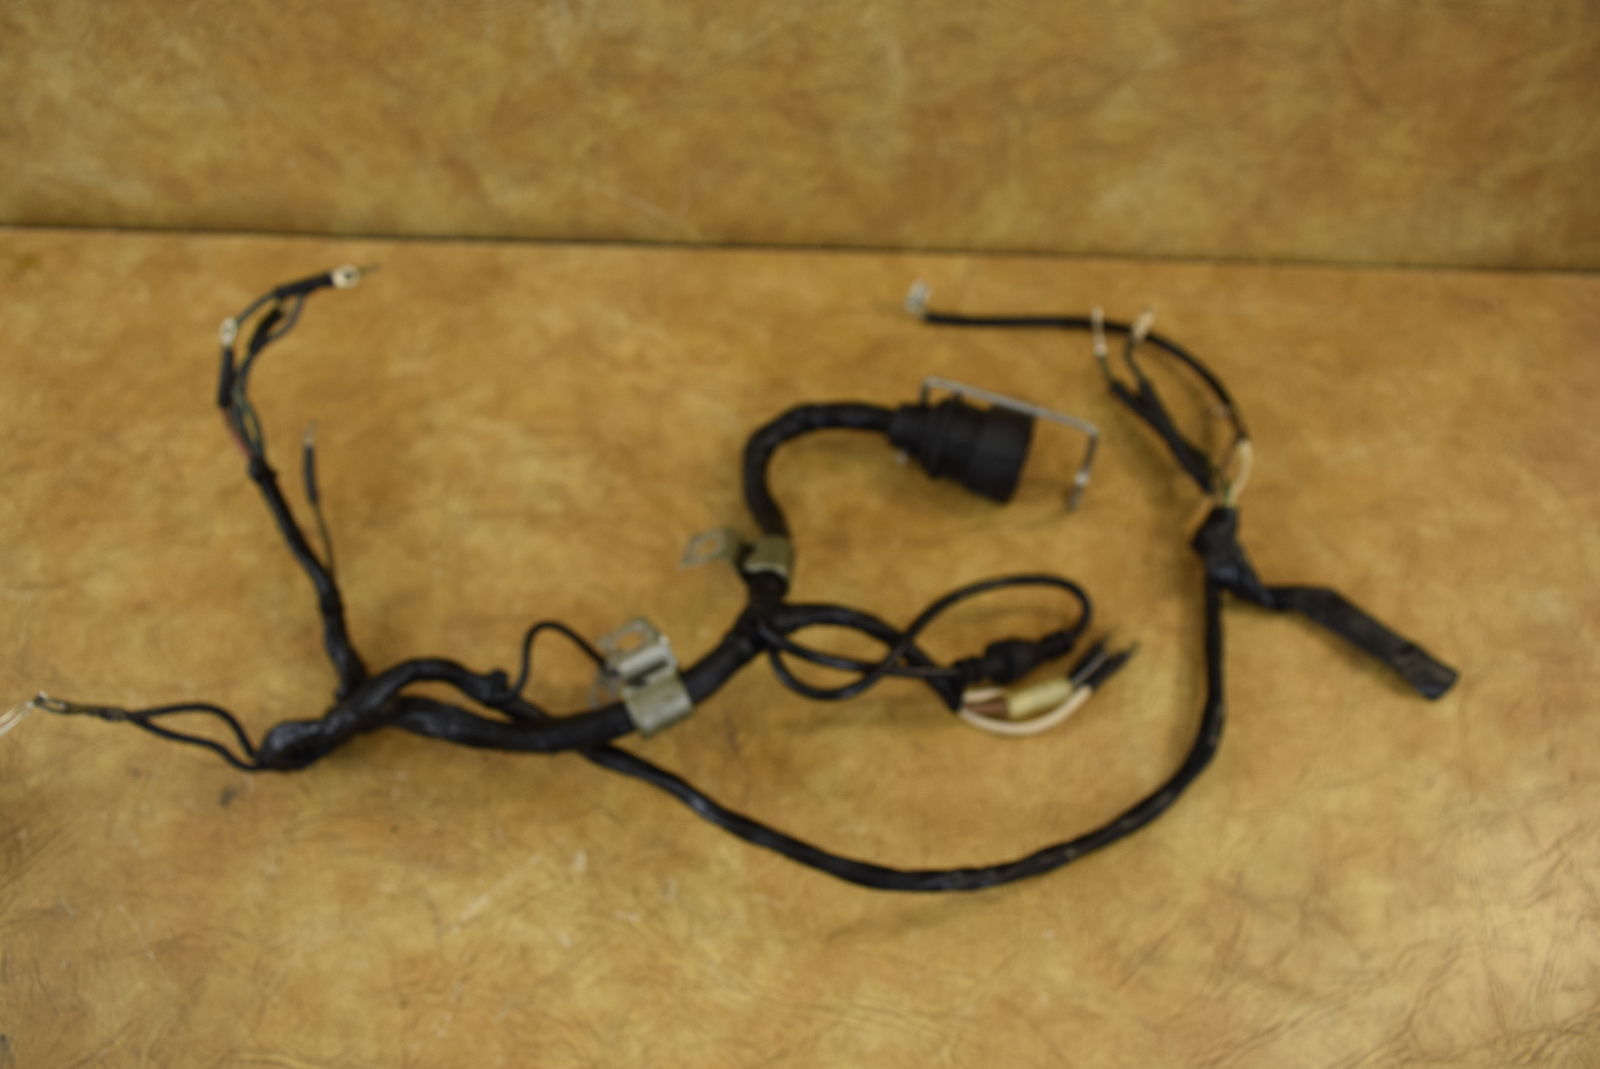 1970 1972 Johnson Evinrude Motor Cable Wiring Harness 384051 85 100 For Outboards 125 Hp